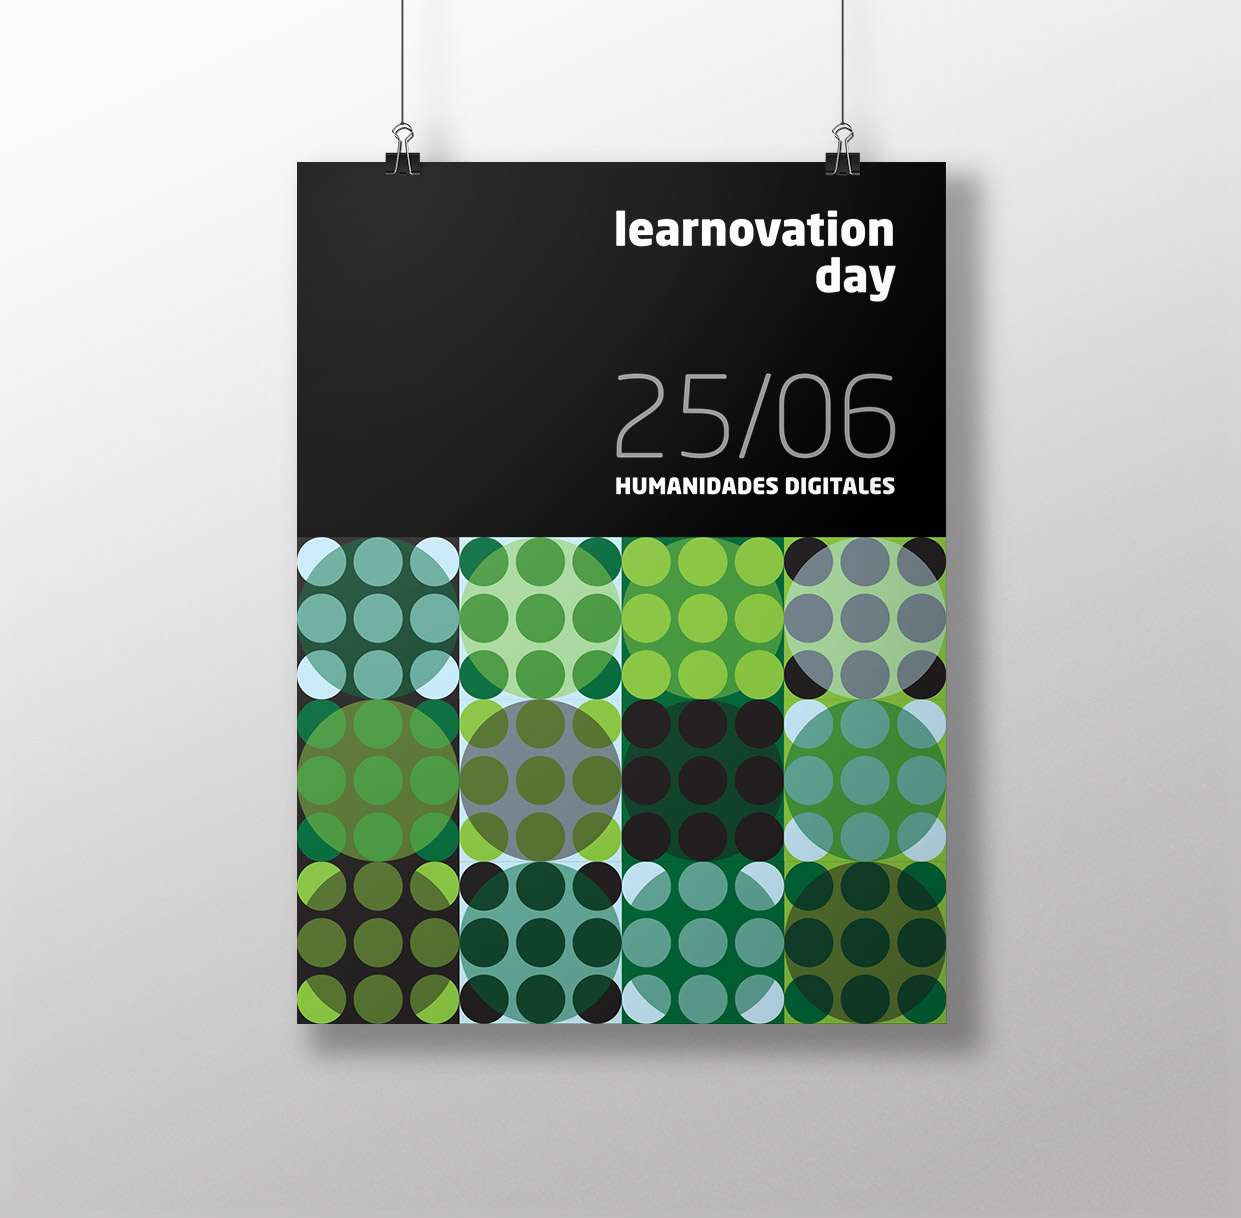 Learnovation-Day-Branding-07.jpg